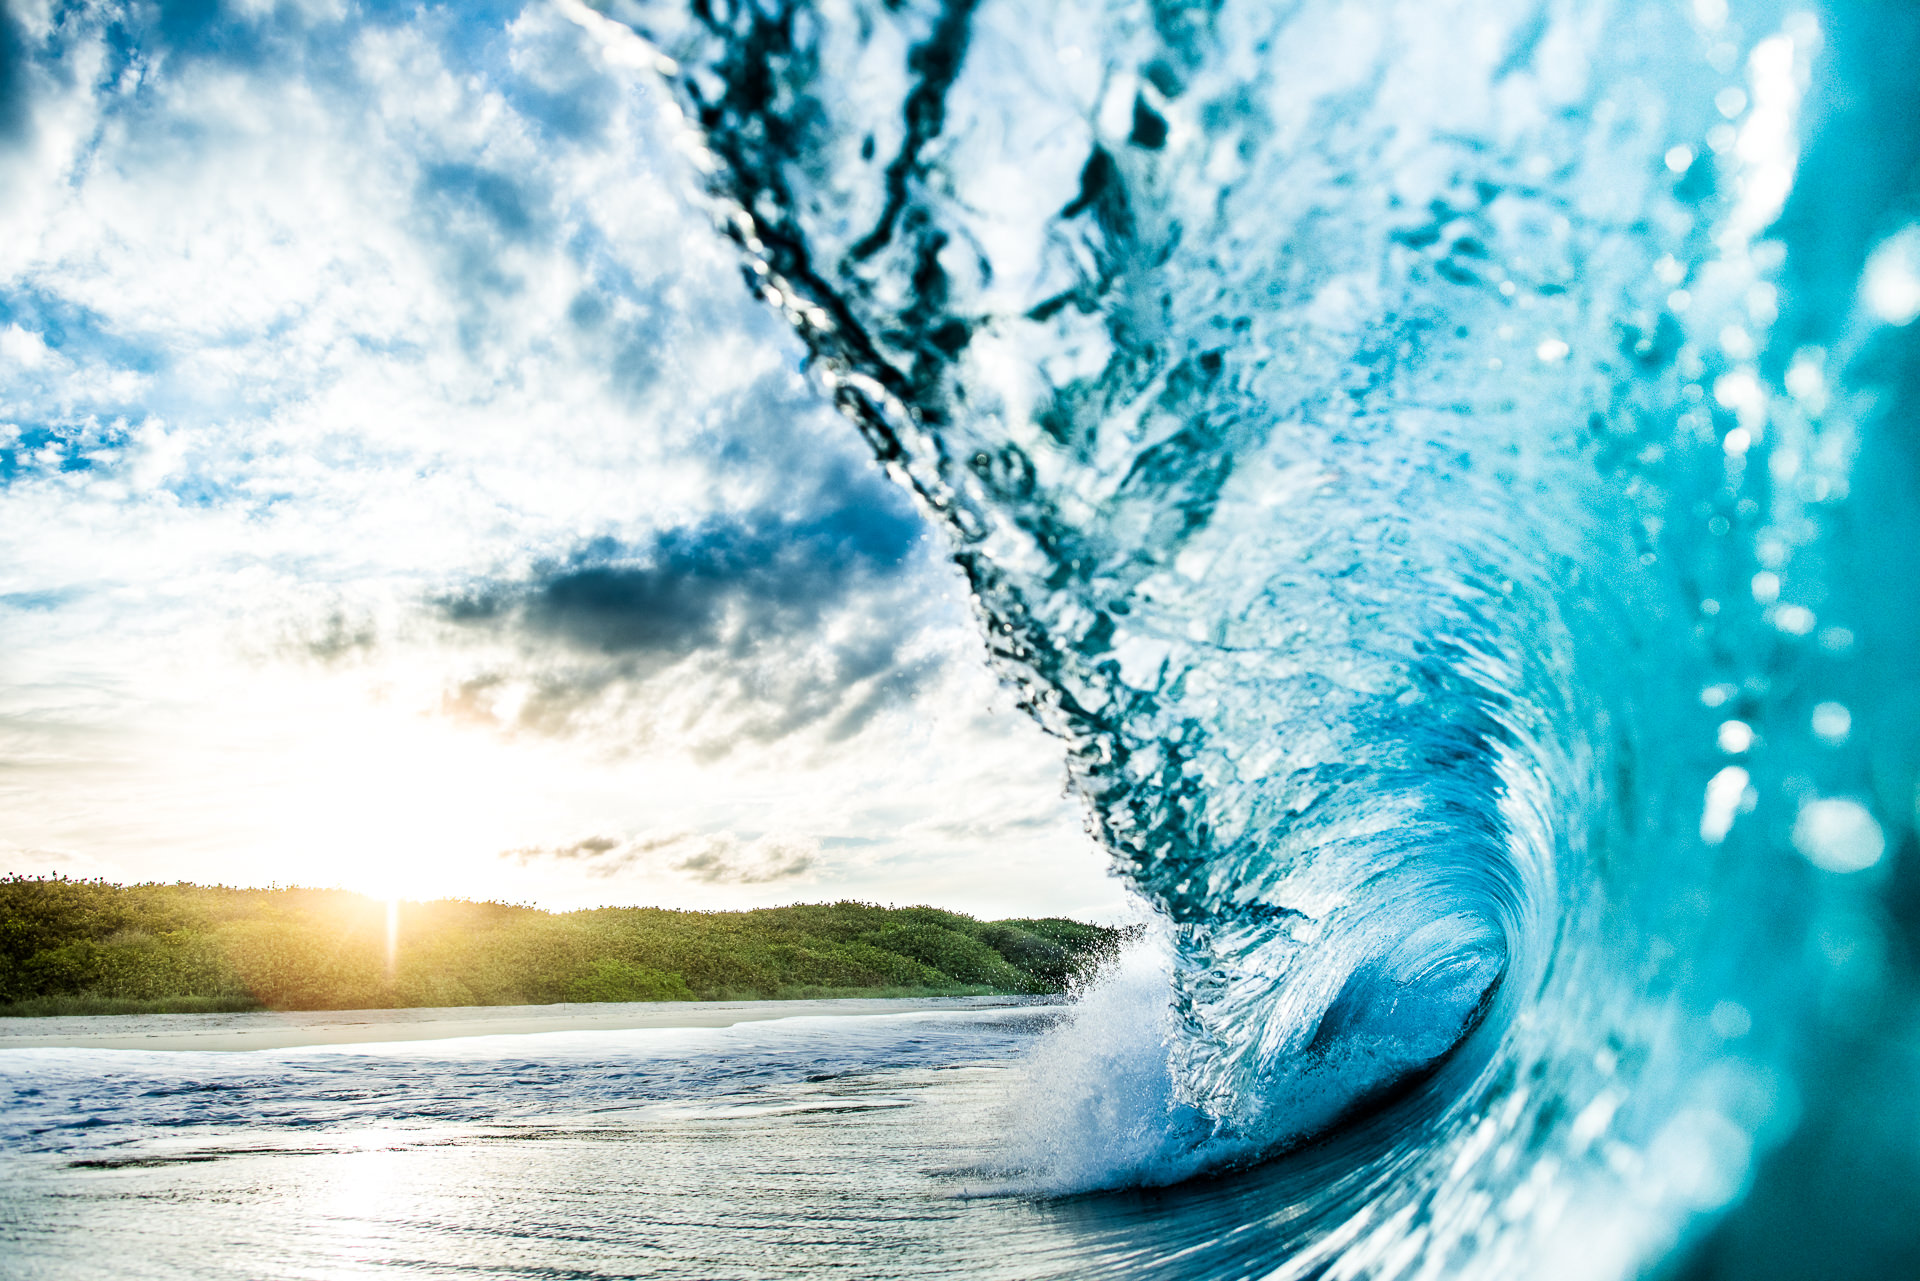 AfternoonSwell-287-Edit.jpg